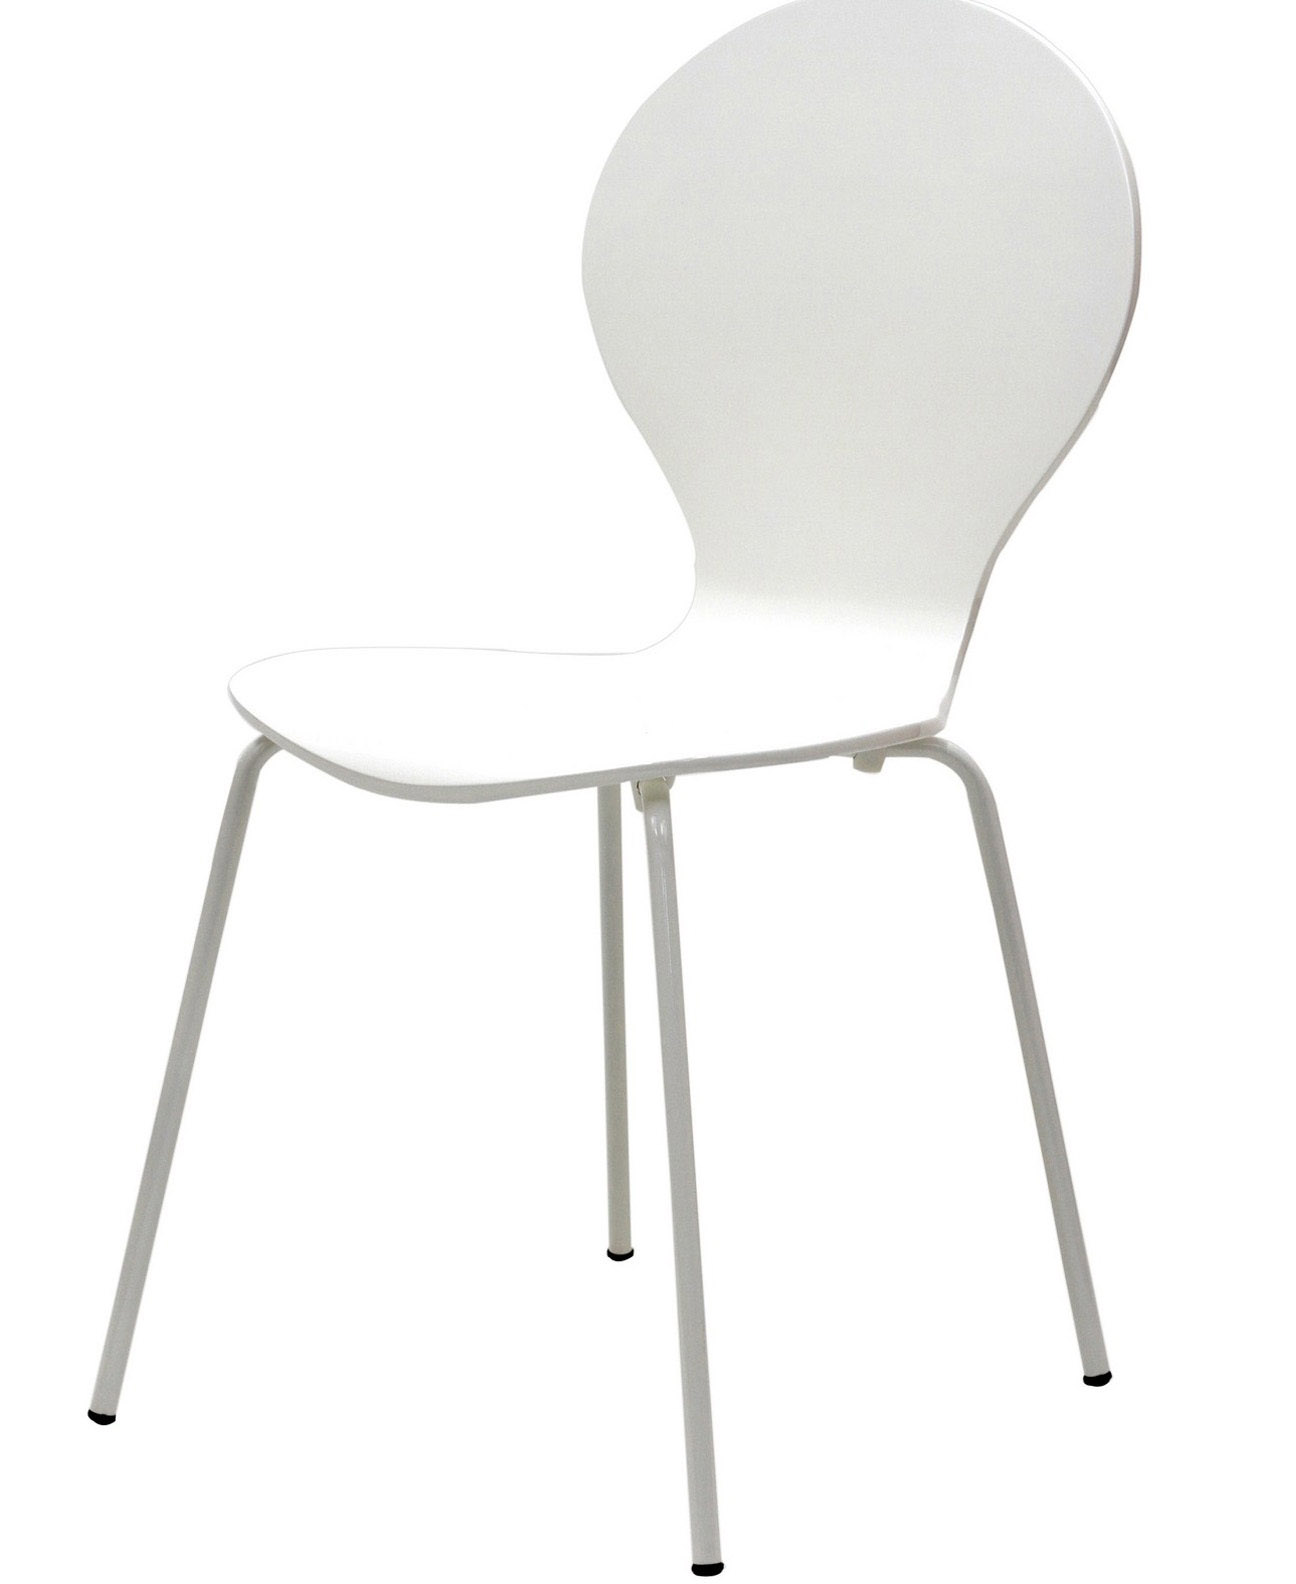 Image Gallery white chair : Ant20chair20white20sideview from keywordsuggest.org size 1296 x 1584 jpeg 82kB